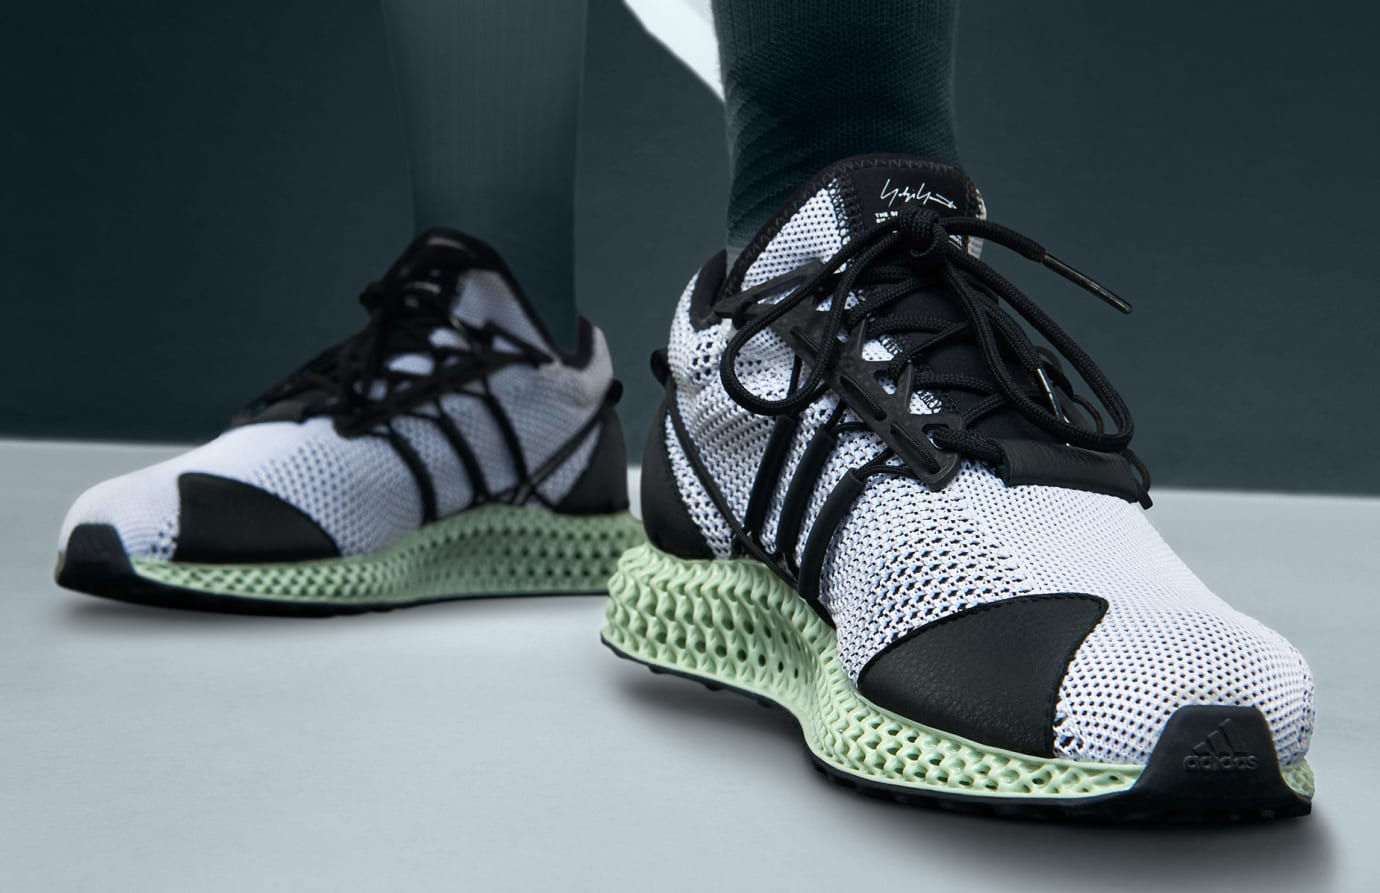 eda0f688c34a4c Adidas Y-3 Runner 4D AQ0357 Release Date